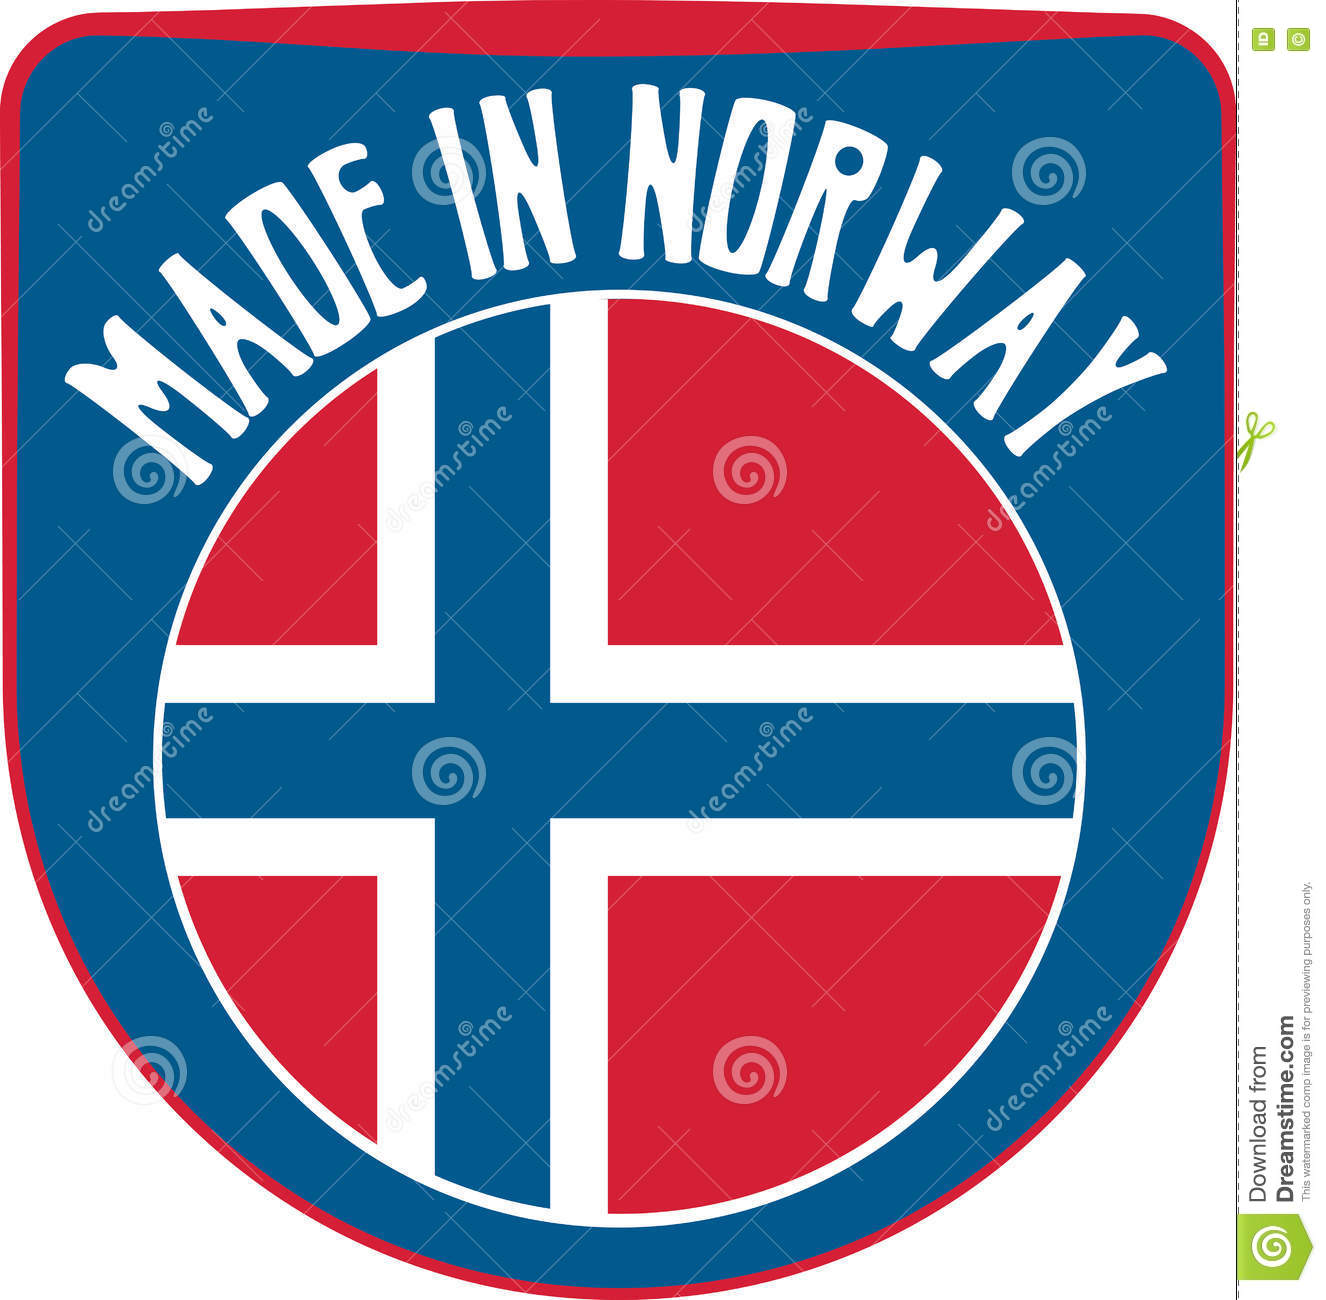 Made In Norway Sign Stock Vector  Image 75816828. Nys Certificate Of Incorporation. Digital Media Education Business Alarm Company. Security Self Storage San Antonio. Plumbing And Things Redwood City. Bankruptcy Denver Colorado Dsl Vs High Speed. Civilian Contracting Companies. Can You Roll An Ira Into A 401k. Apple Schedule Appointment Scion Frs Vs Miata